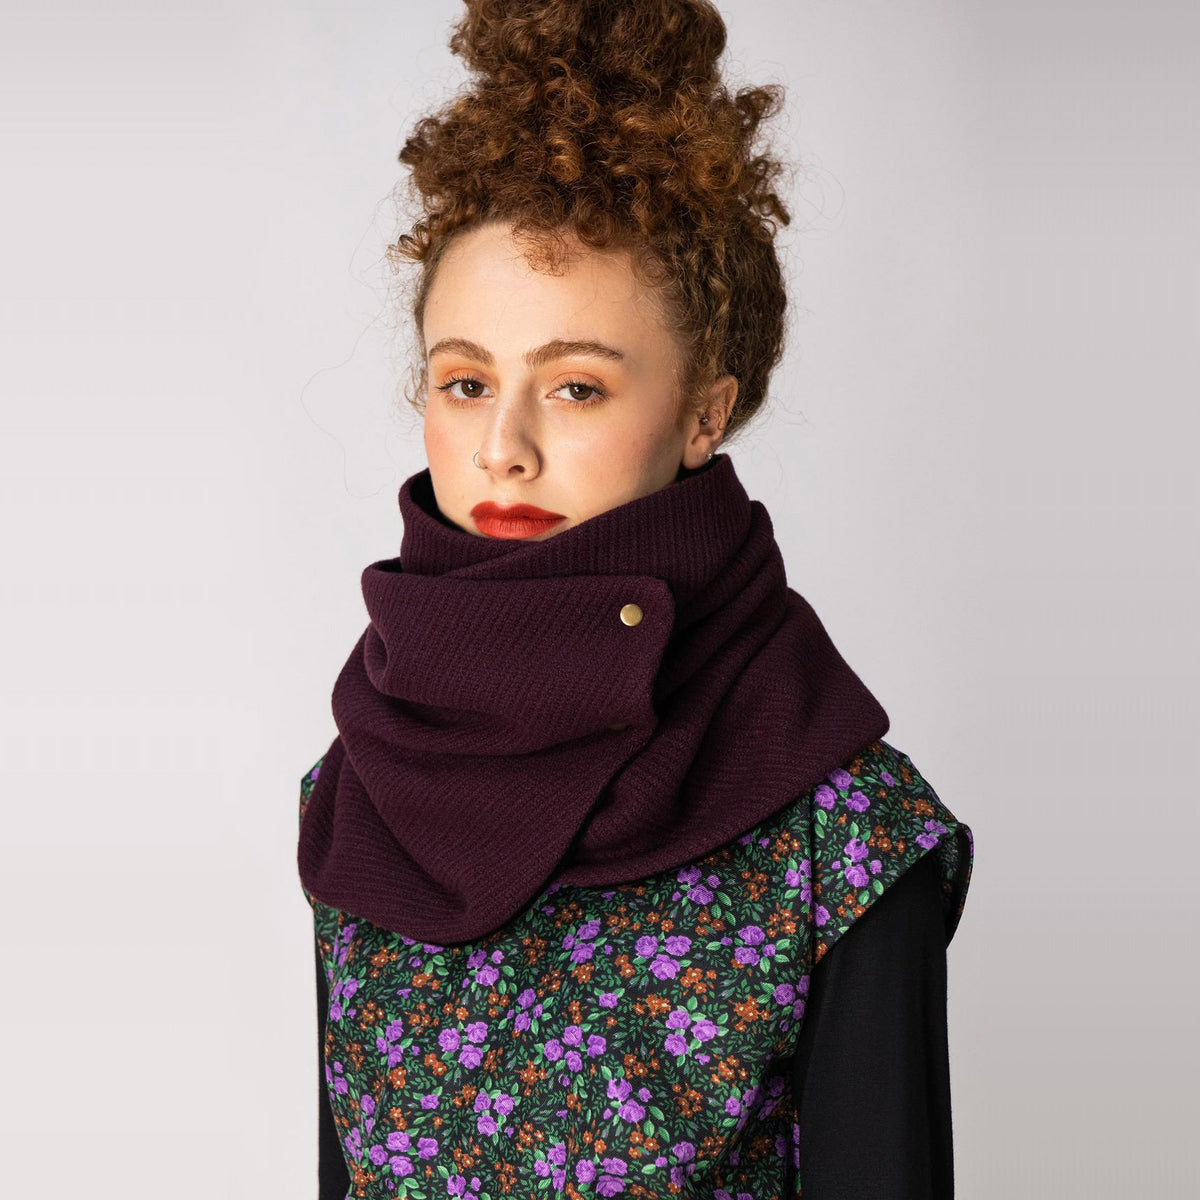 Model Wearing a Dandurand Knitted Cotton Scarf - Burgundy - Sold by Chic & Basta